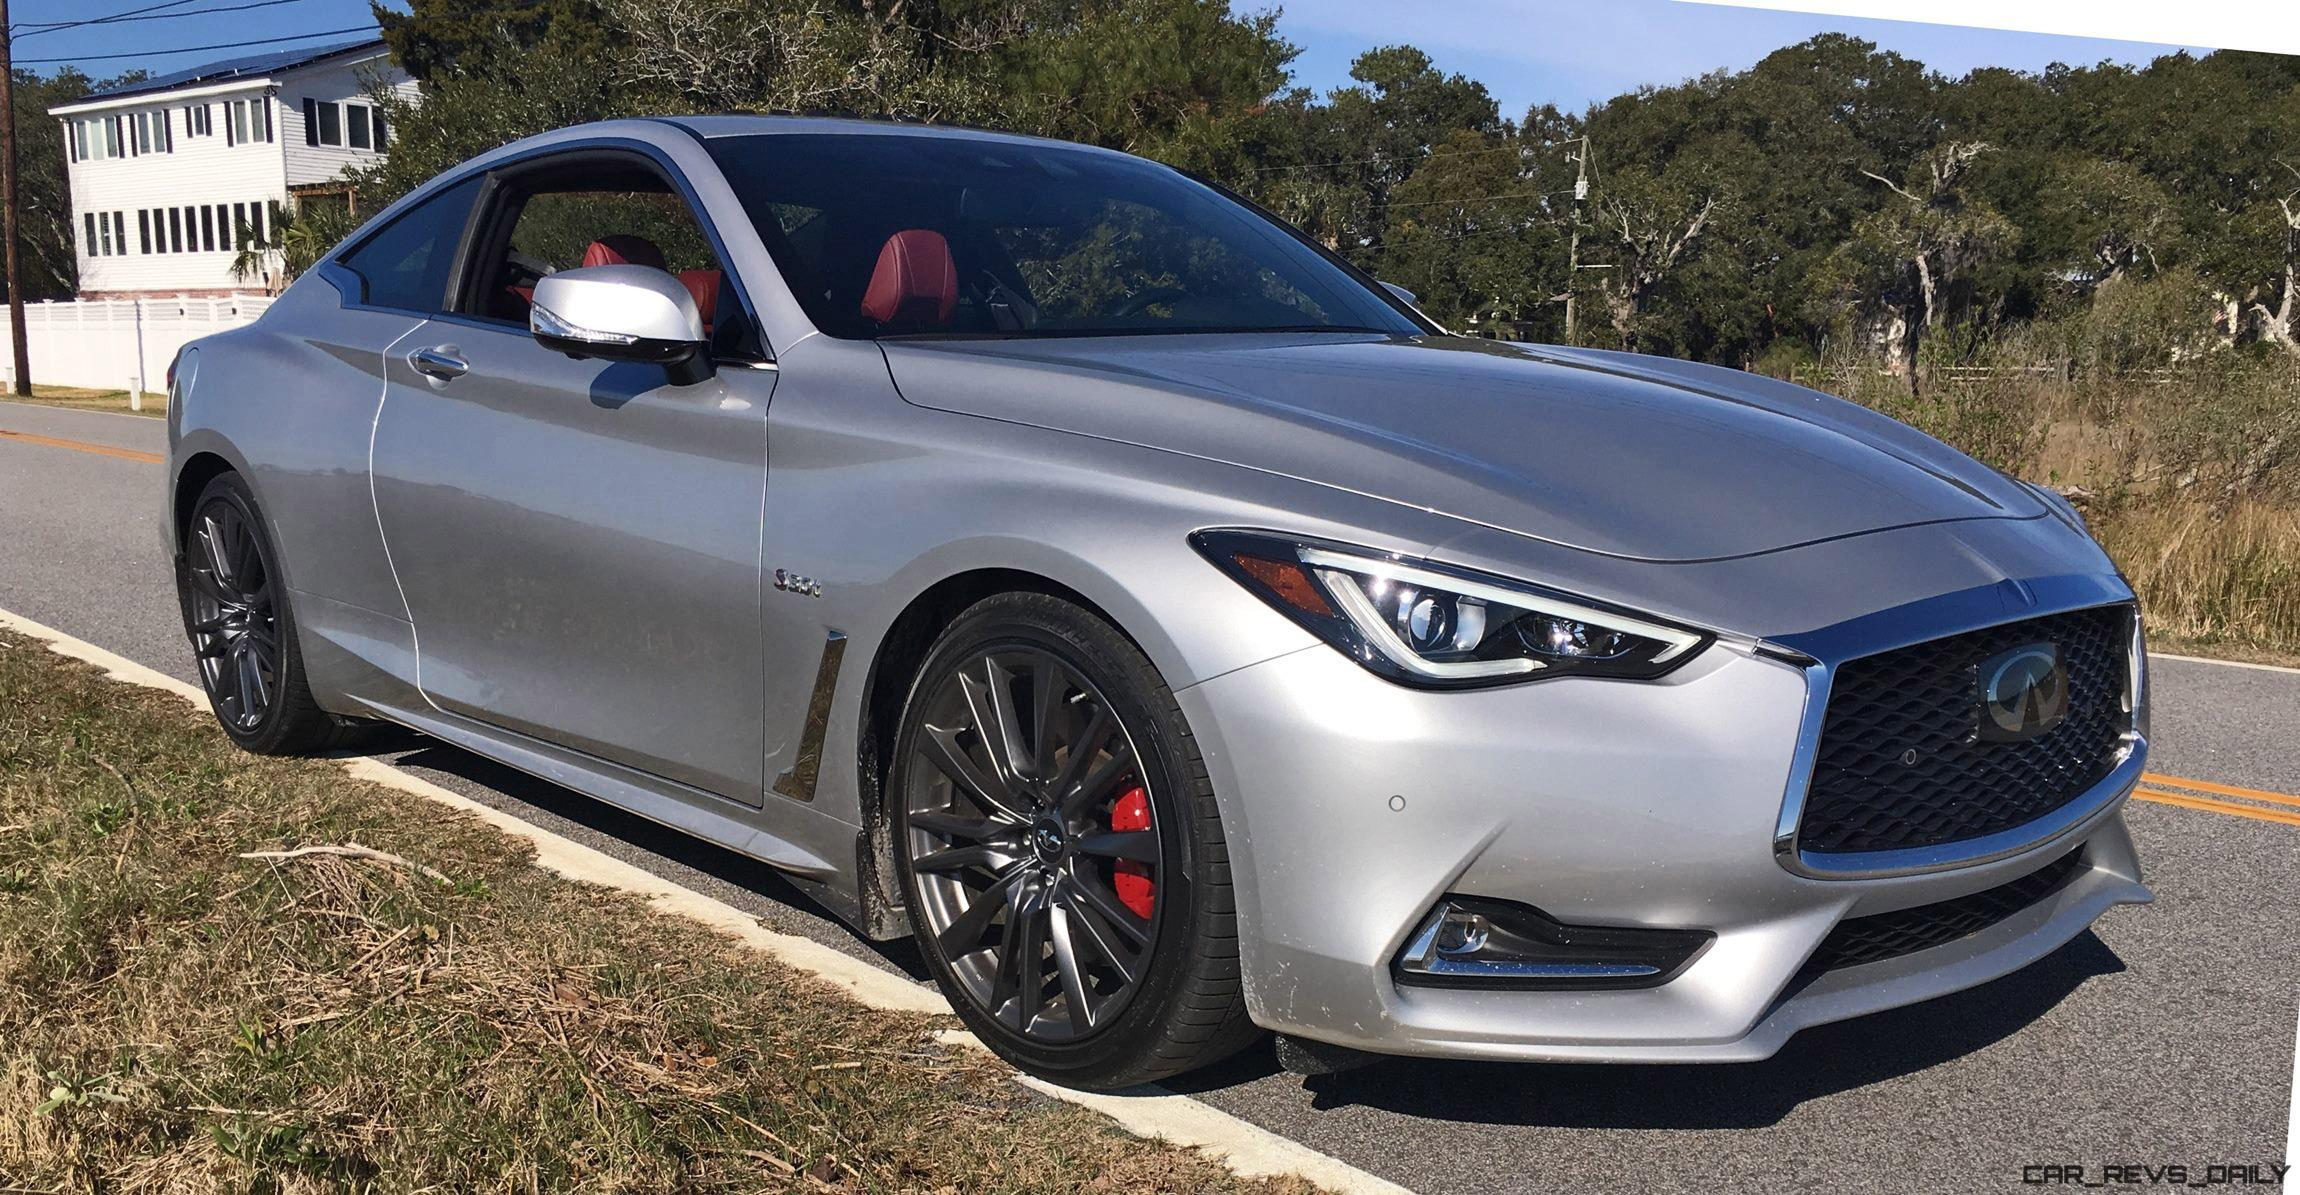 2017 infiniti q60 red sport 400 hd road test review car shopping. Black Bedroom Furniture Sets. Home Design Ideas